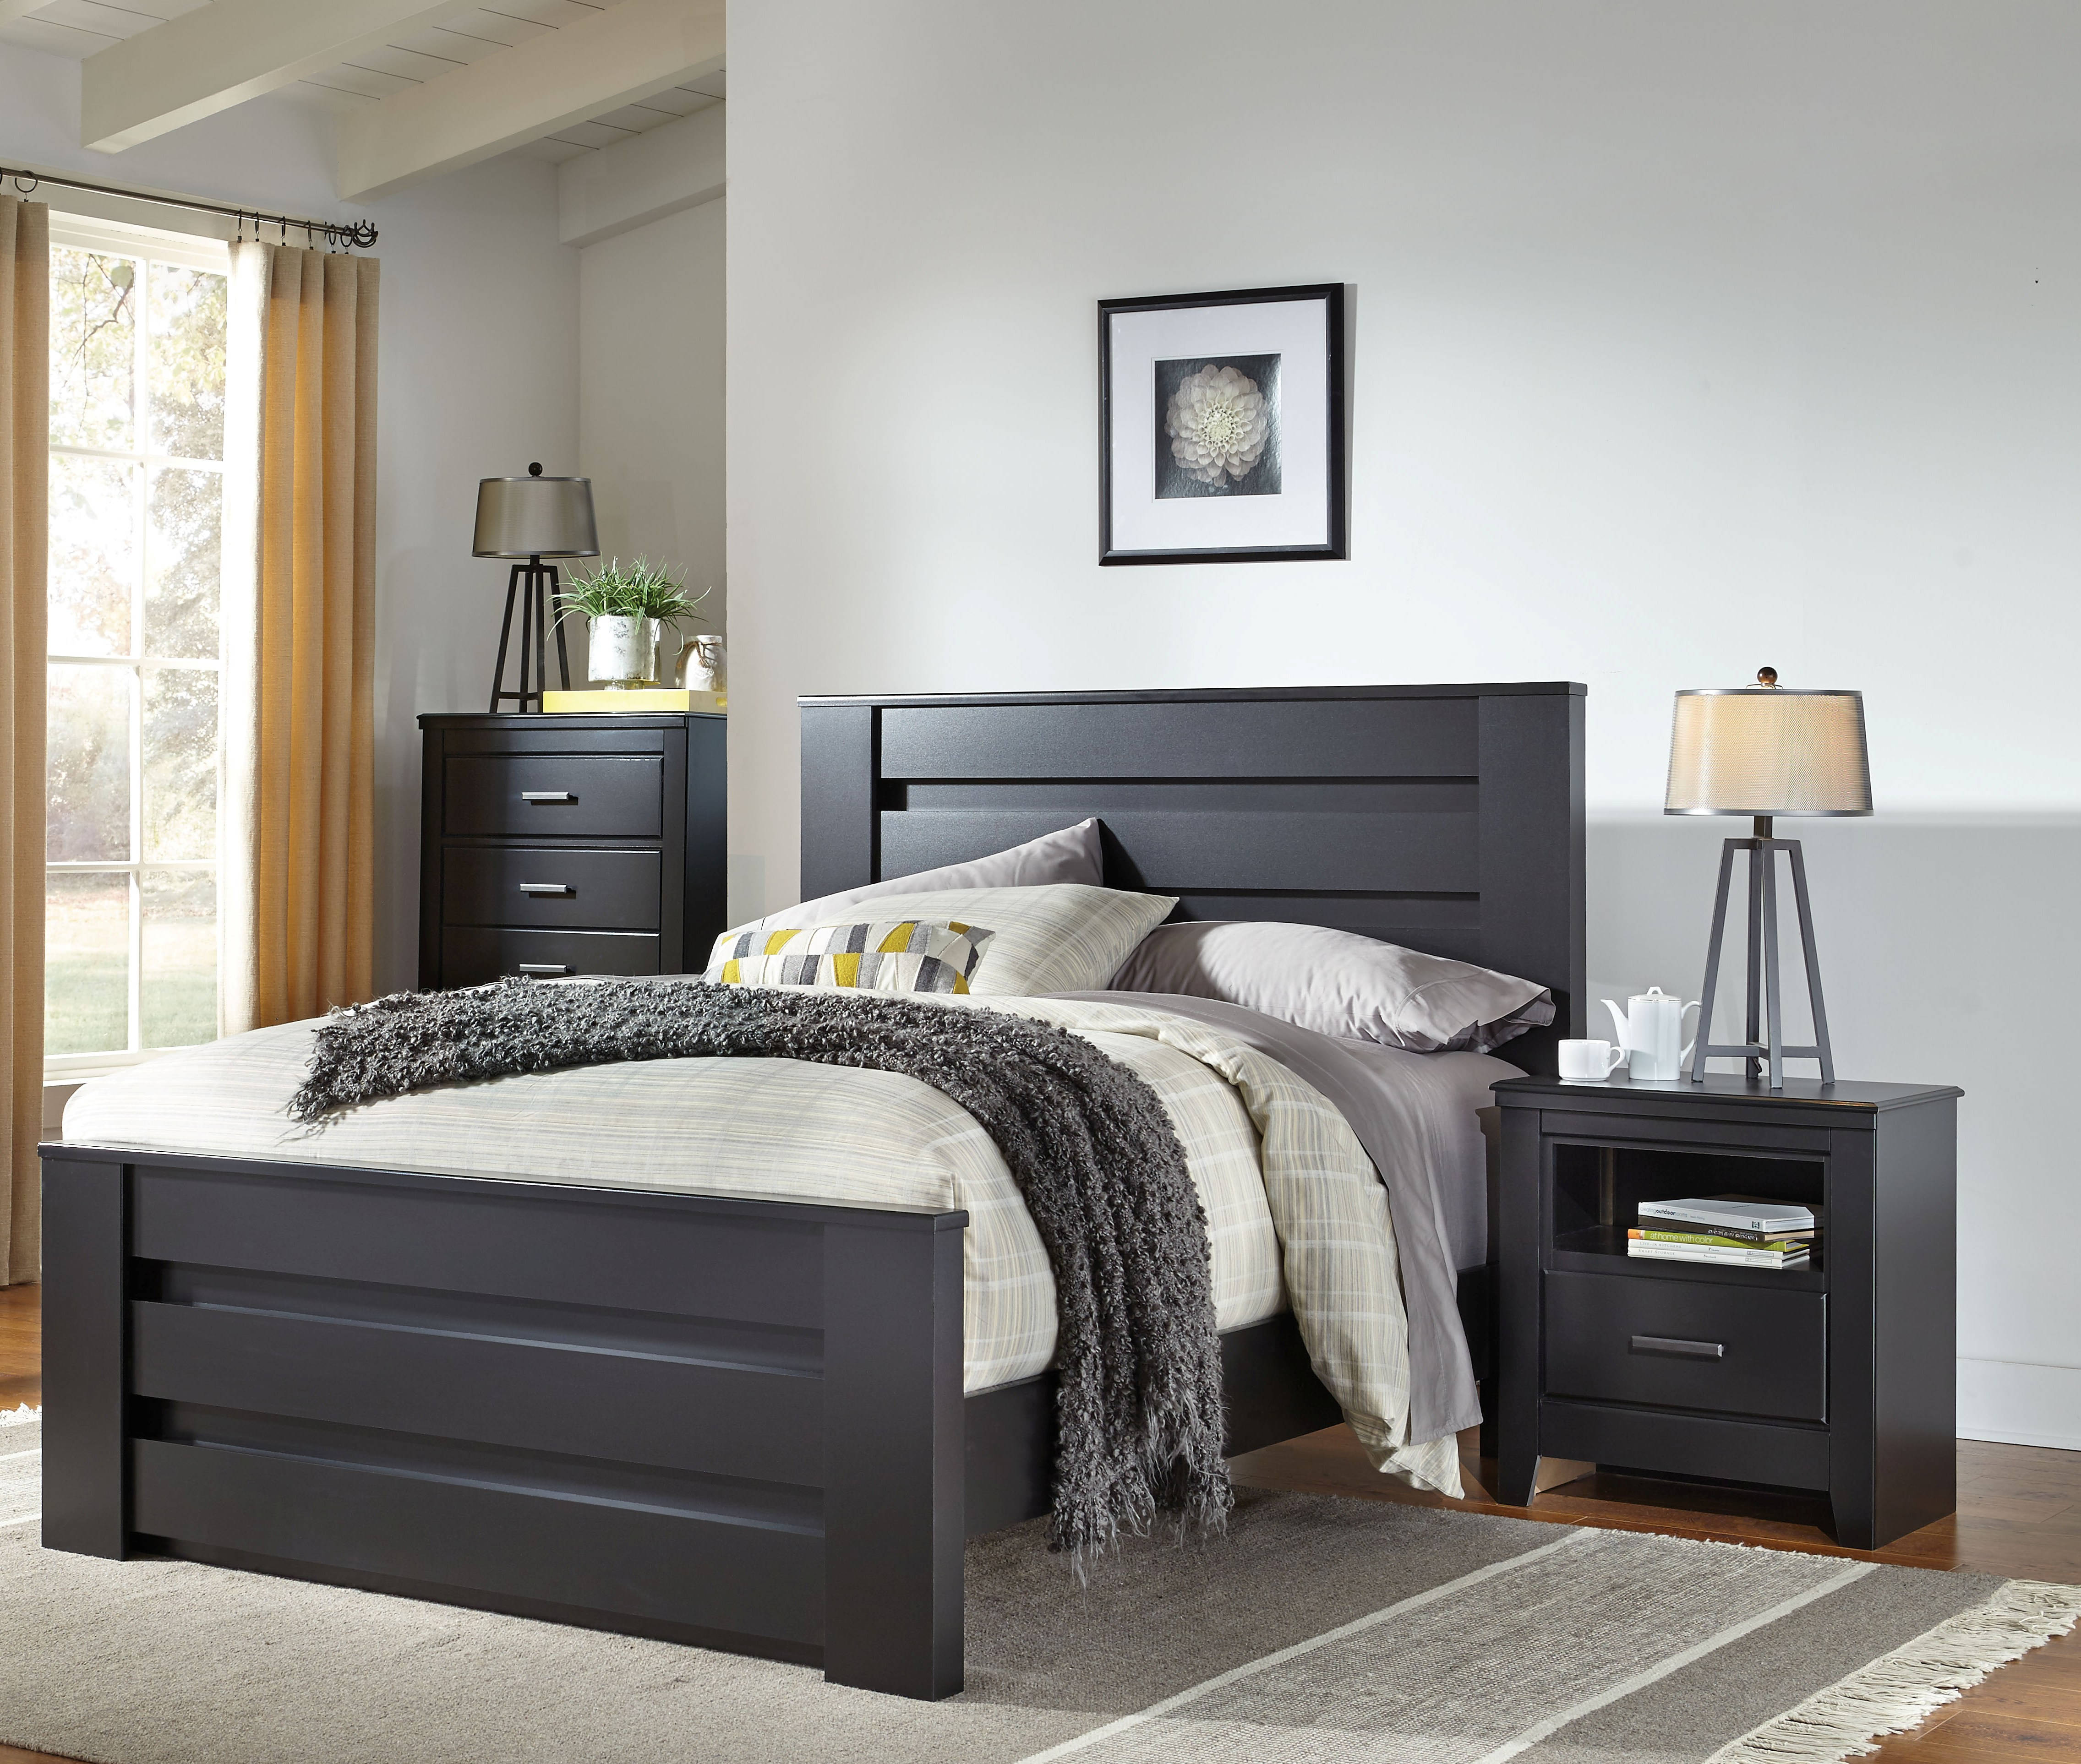 42b4814b1be0b0 Standard Furniture Modesto Black 2pc Bedroom Set with Queen Mansion Bed  Click To Enlarge ...